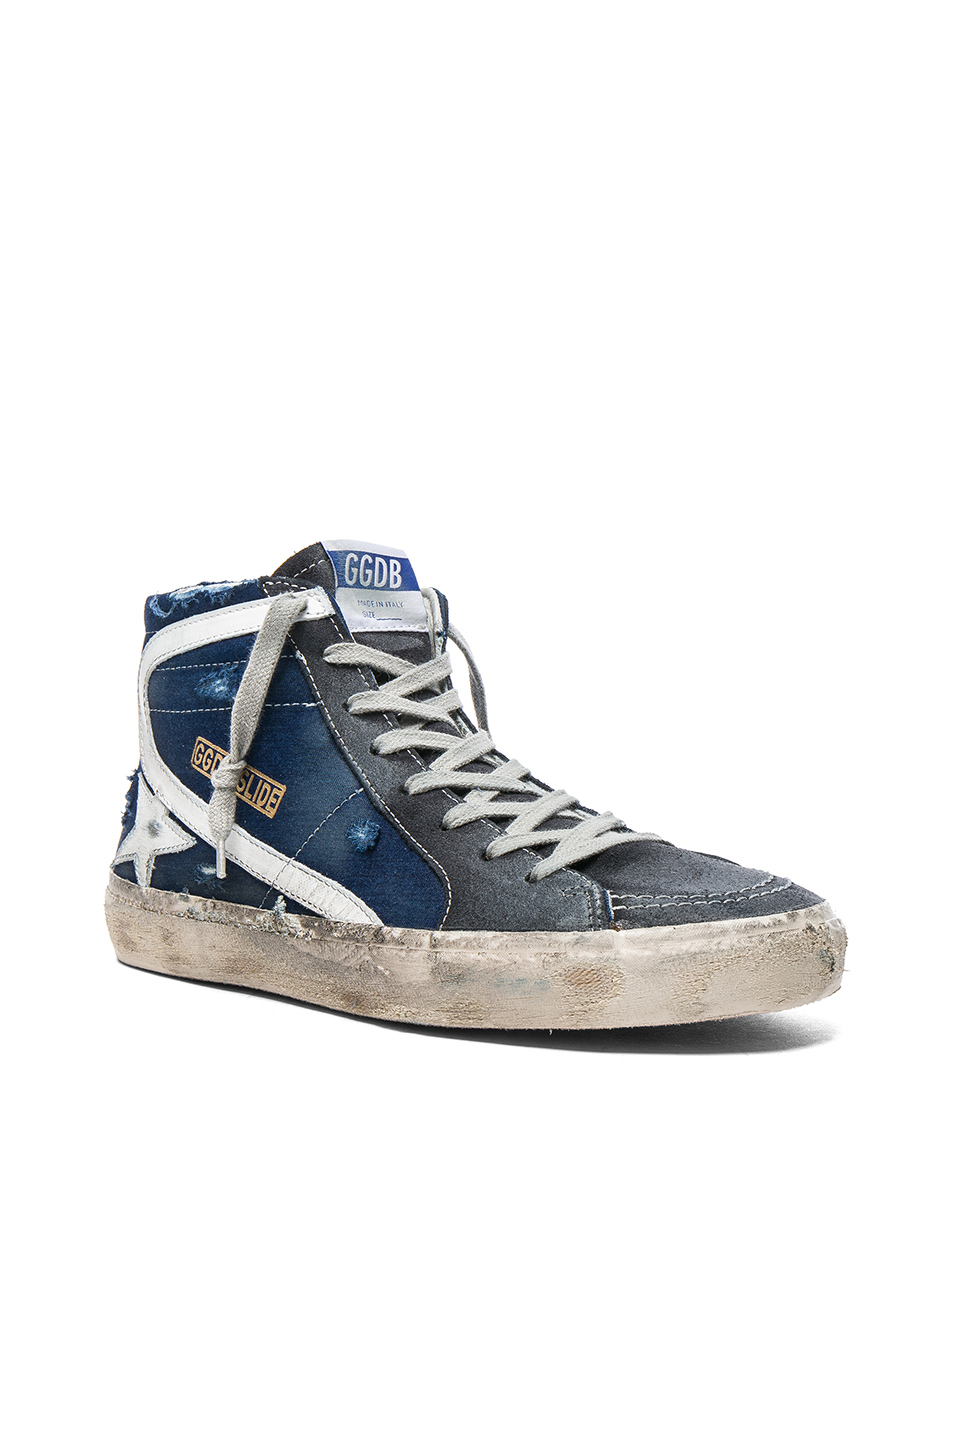 Golden Goose Slide Sneakers in Blue